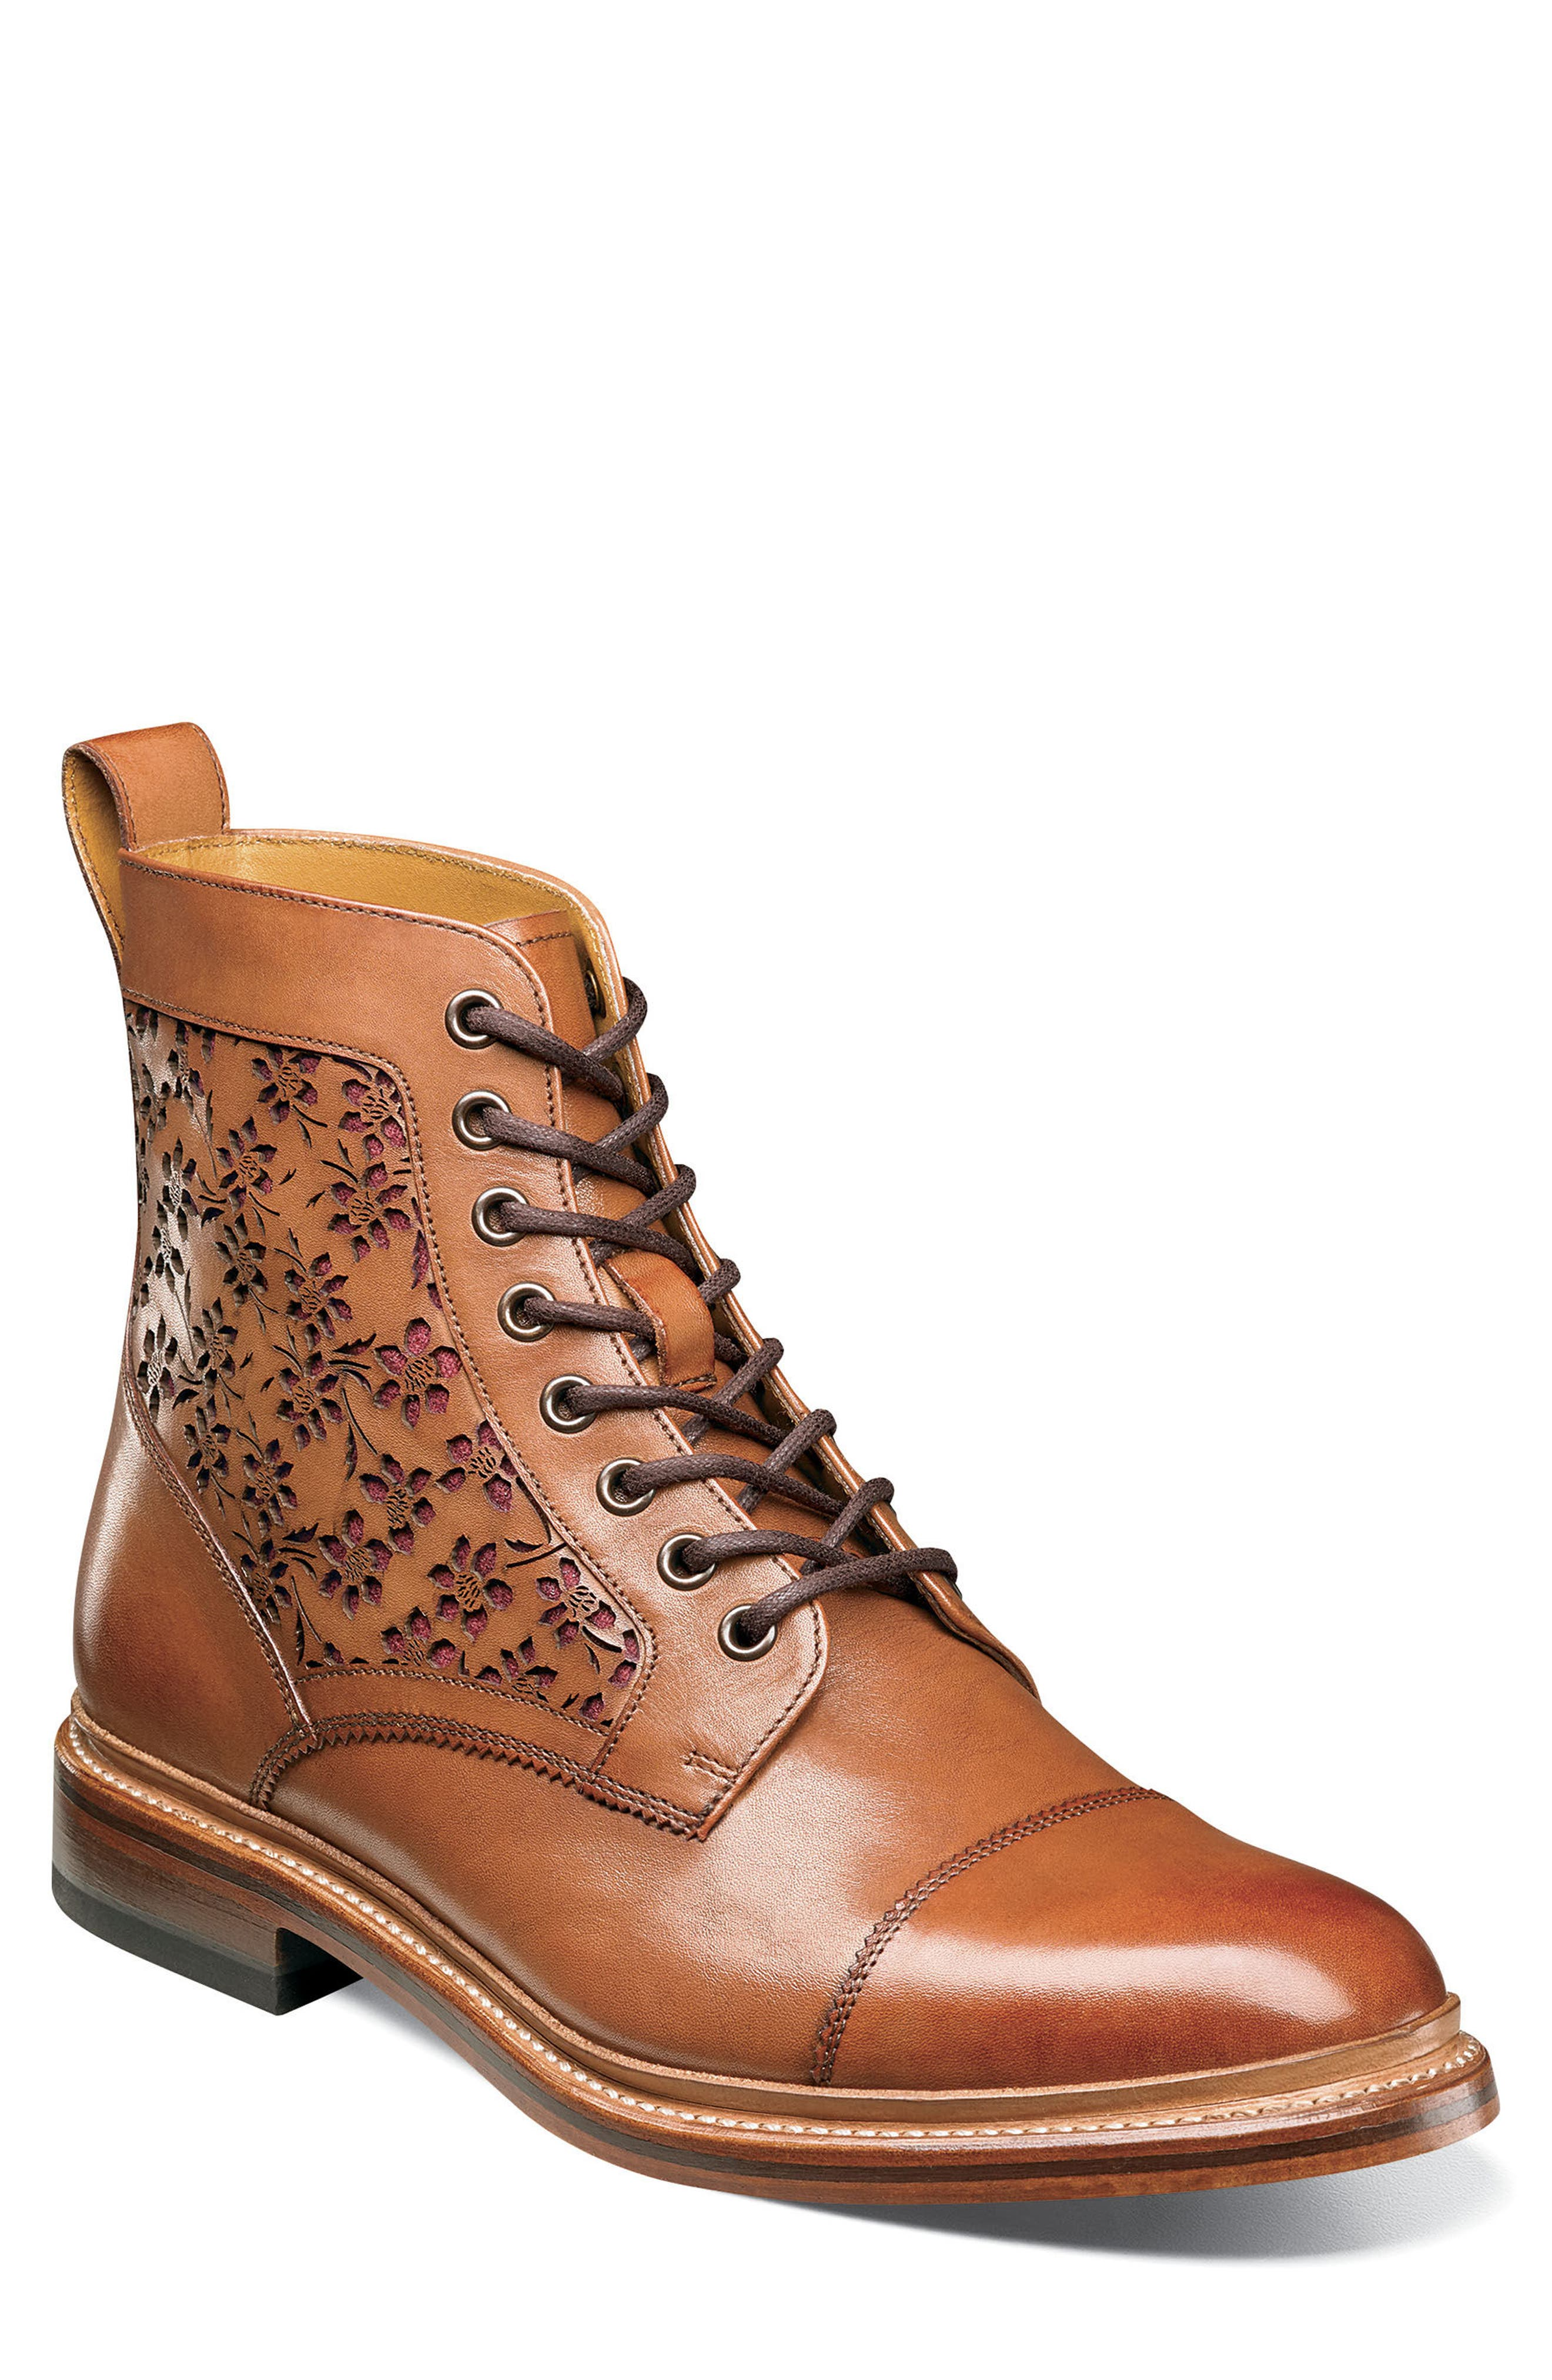 Stacy Adams M2 Laser Cut Boot - Brown